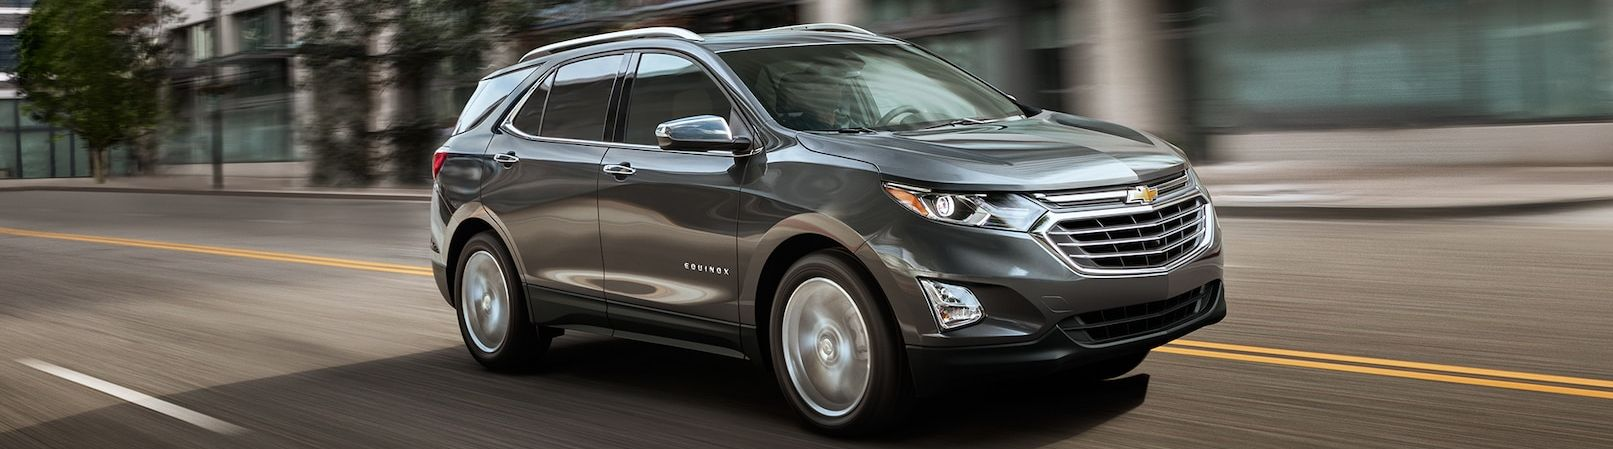 2018 Chevrolet Equinox vs 2018 Ford Escape in Clinton Township, MI